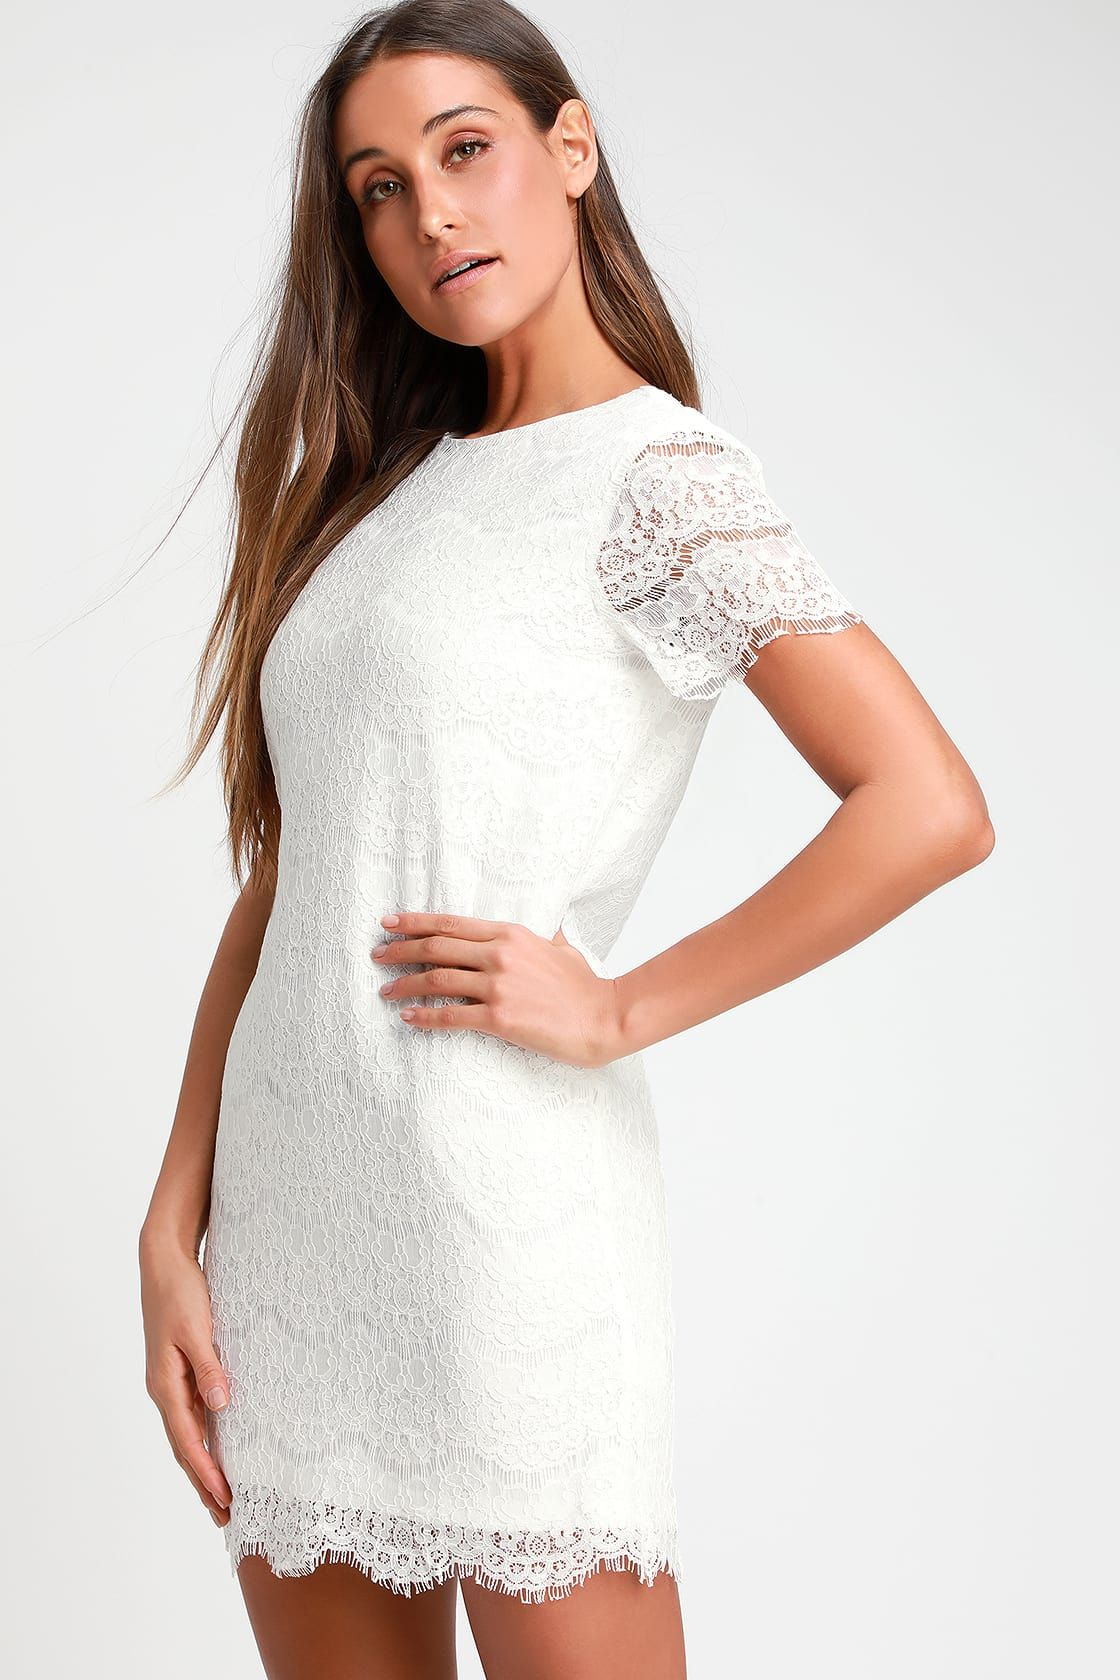 Take Me To Brunch Ivory Lace Shift Dress Lace Shift Dress White Long Sleeve Shift Dress White Dresses For Women [ 1680 x 1120 Pixel ]